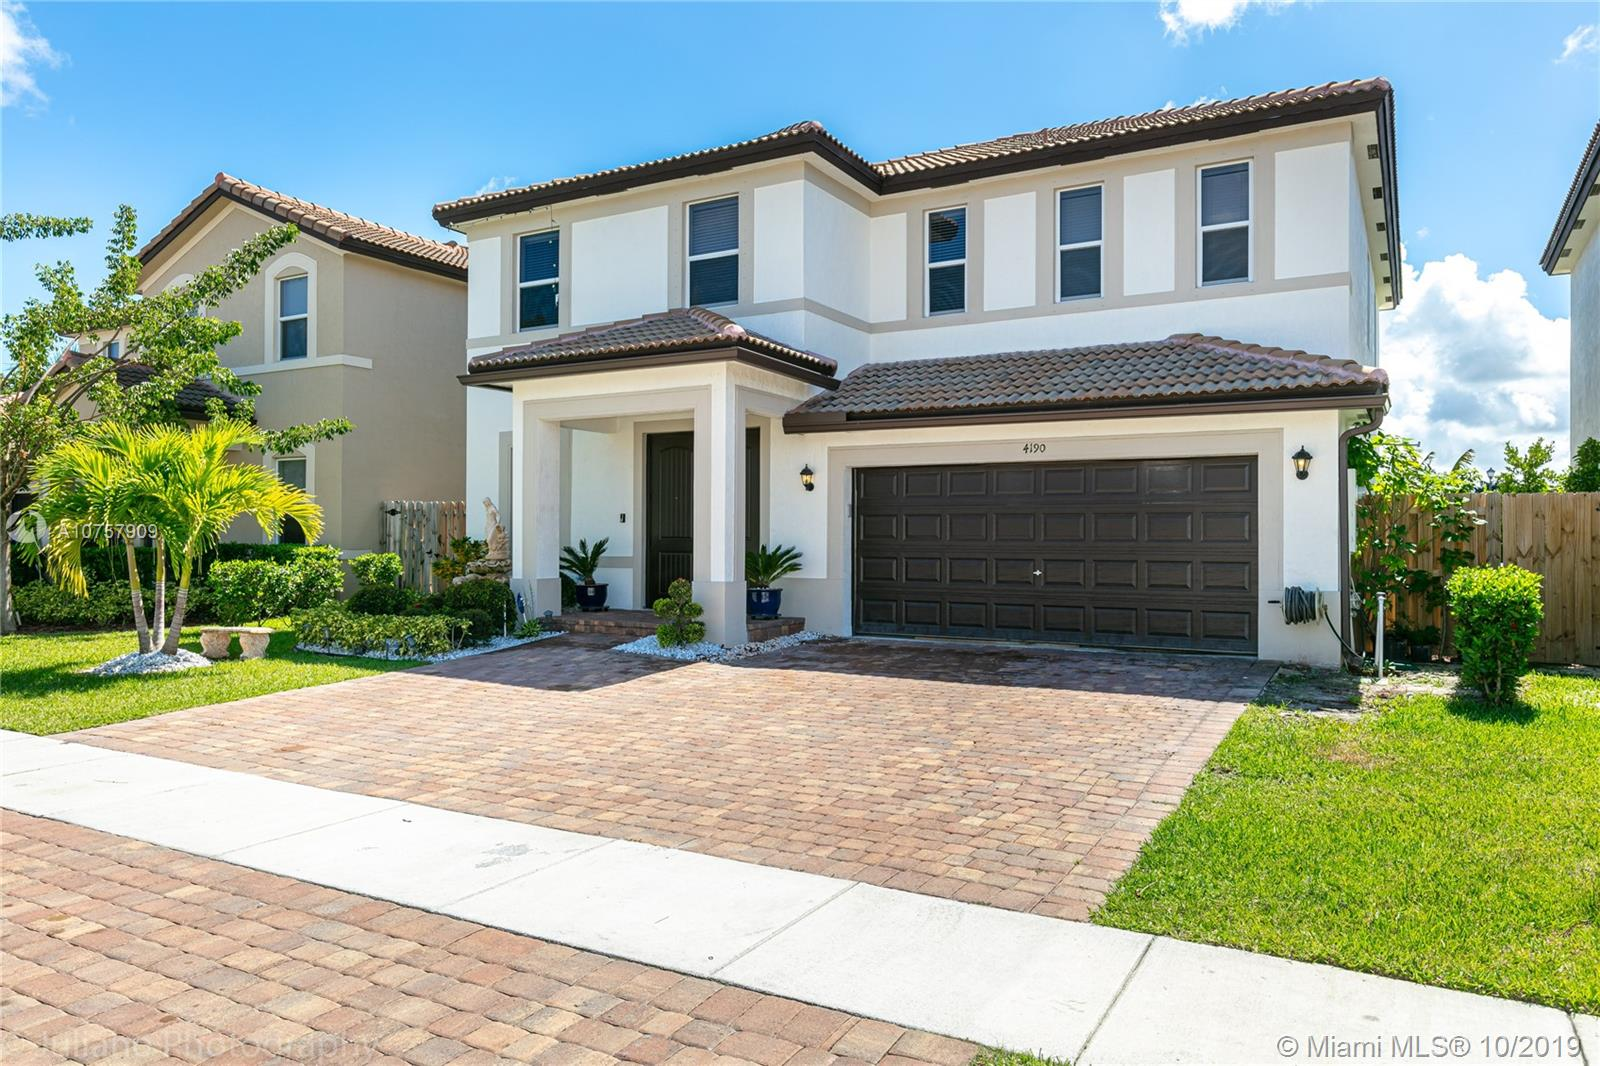 4190 NE 20th St, Homestead, FL 33033 - Homestead, FL real estate listing